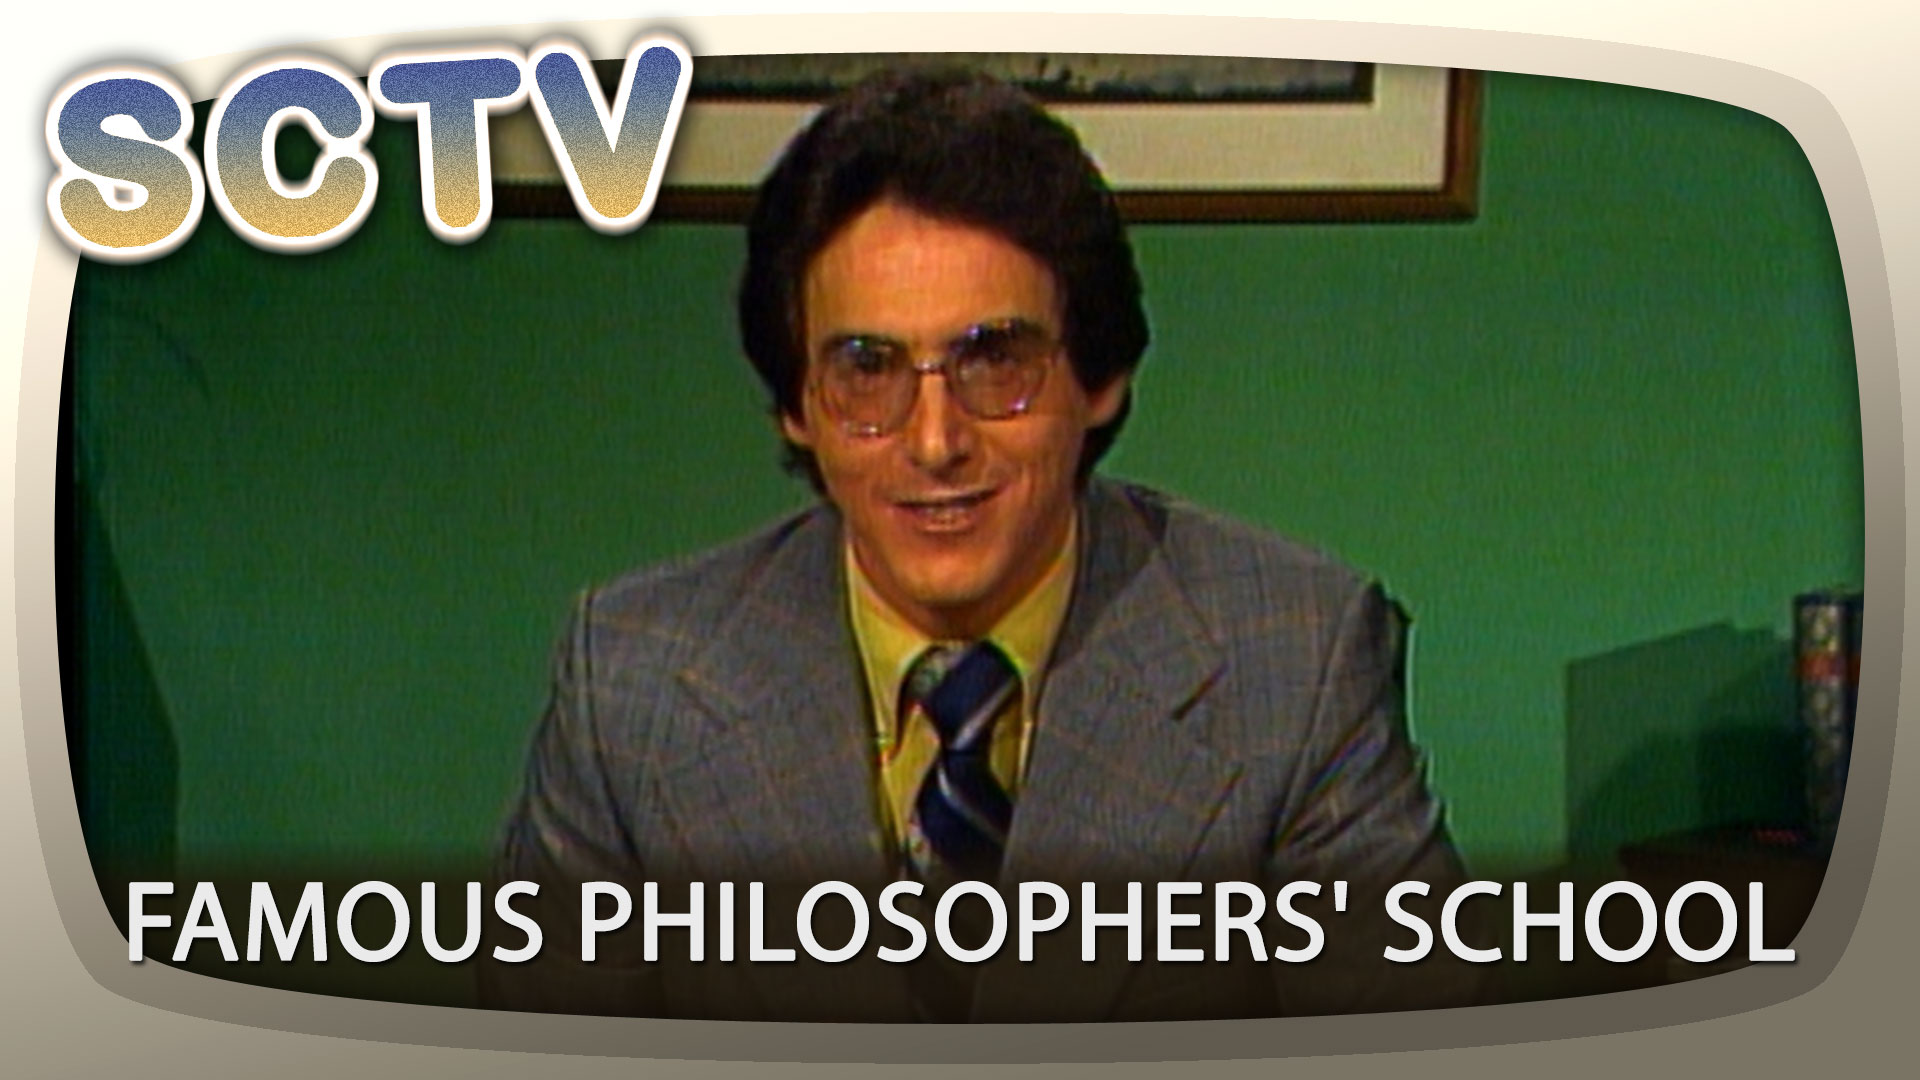 SCTV: Famous Philosophers' School with Harold Ramis